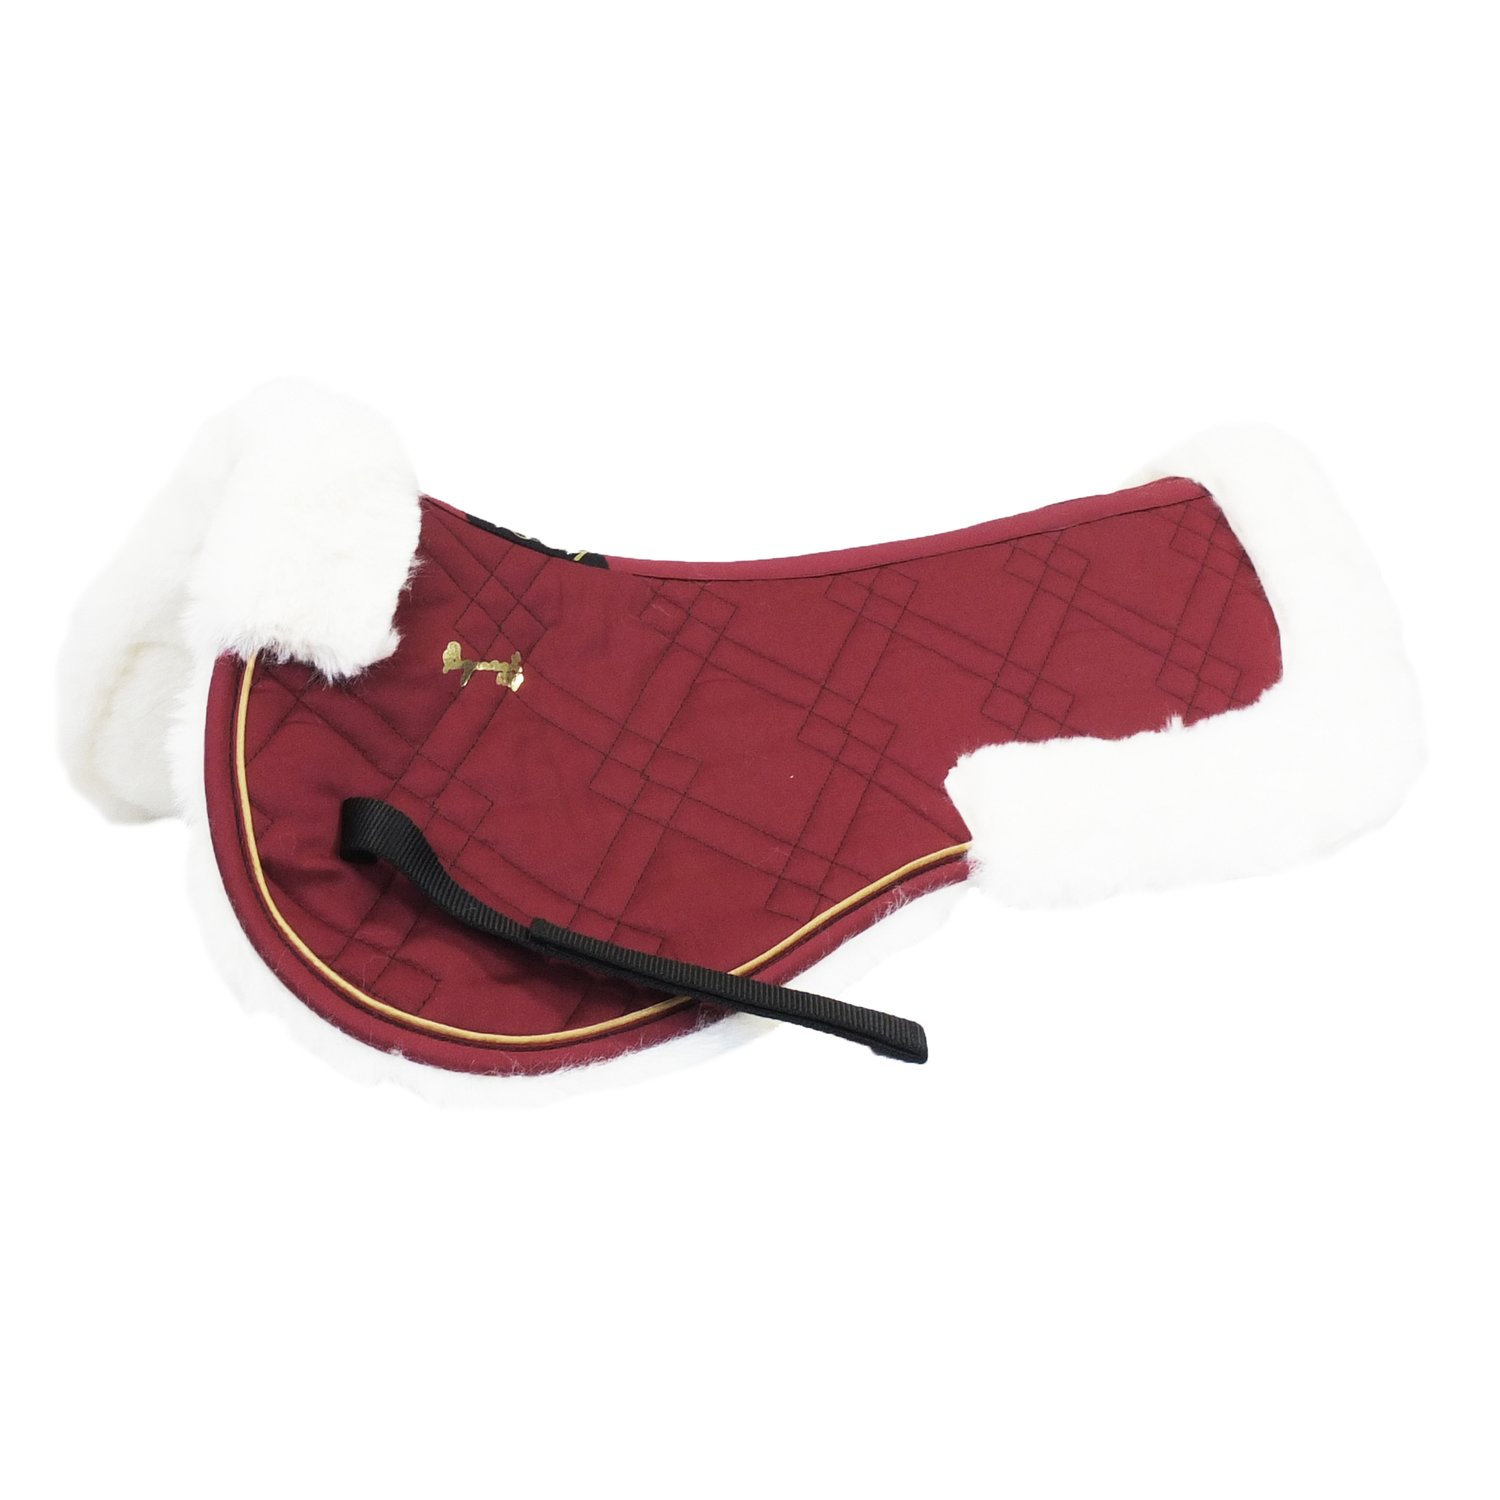 EQuest Sattelpad EQ Globe Illusion Fur bordeaux | Warmblut